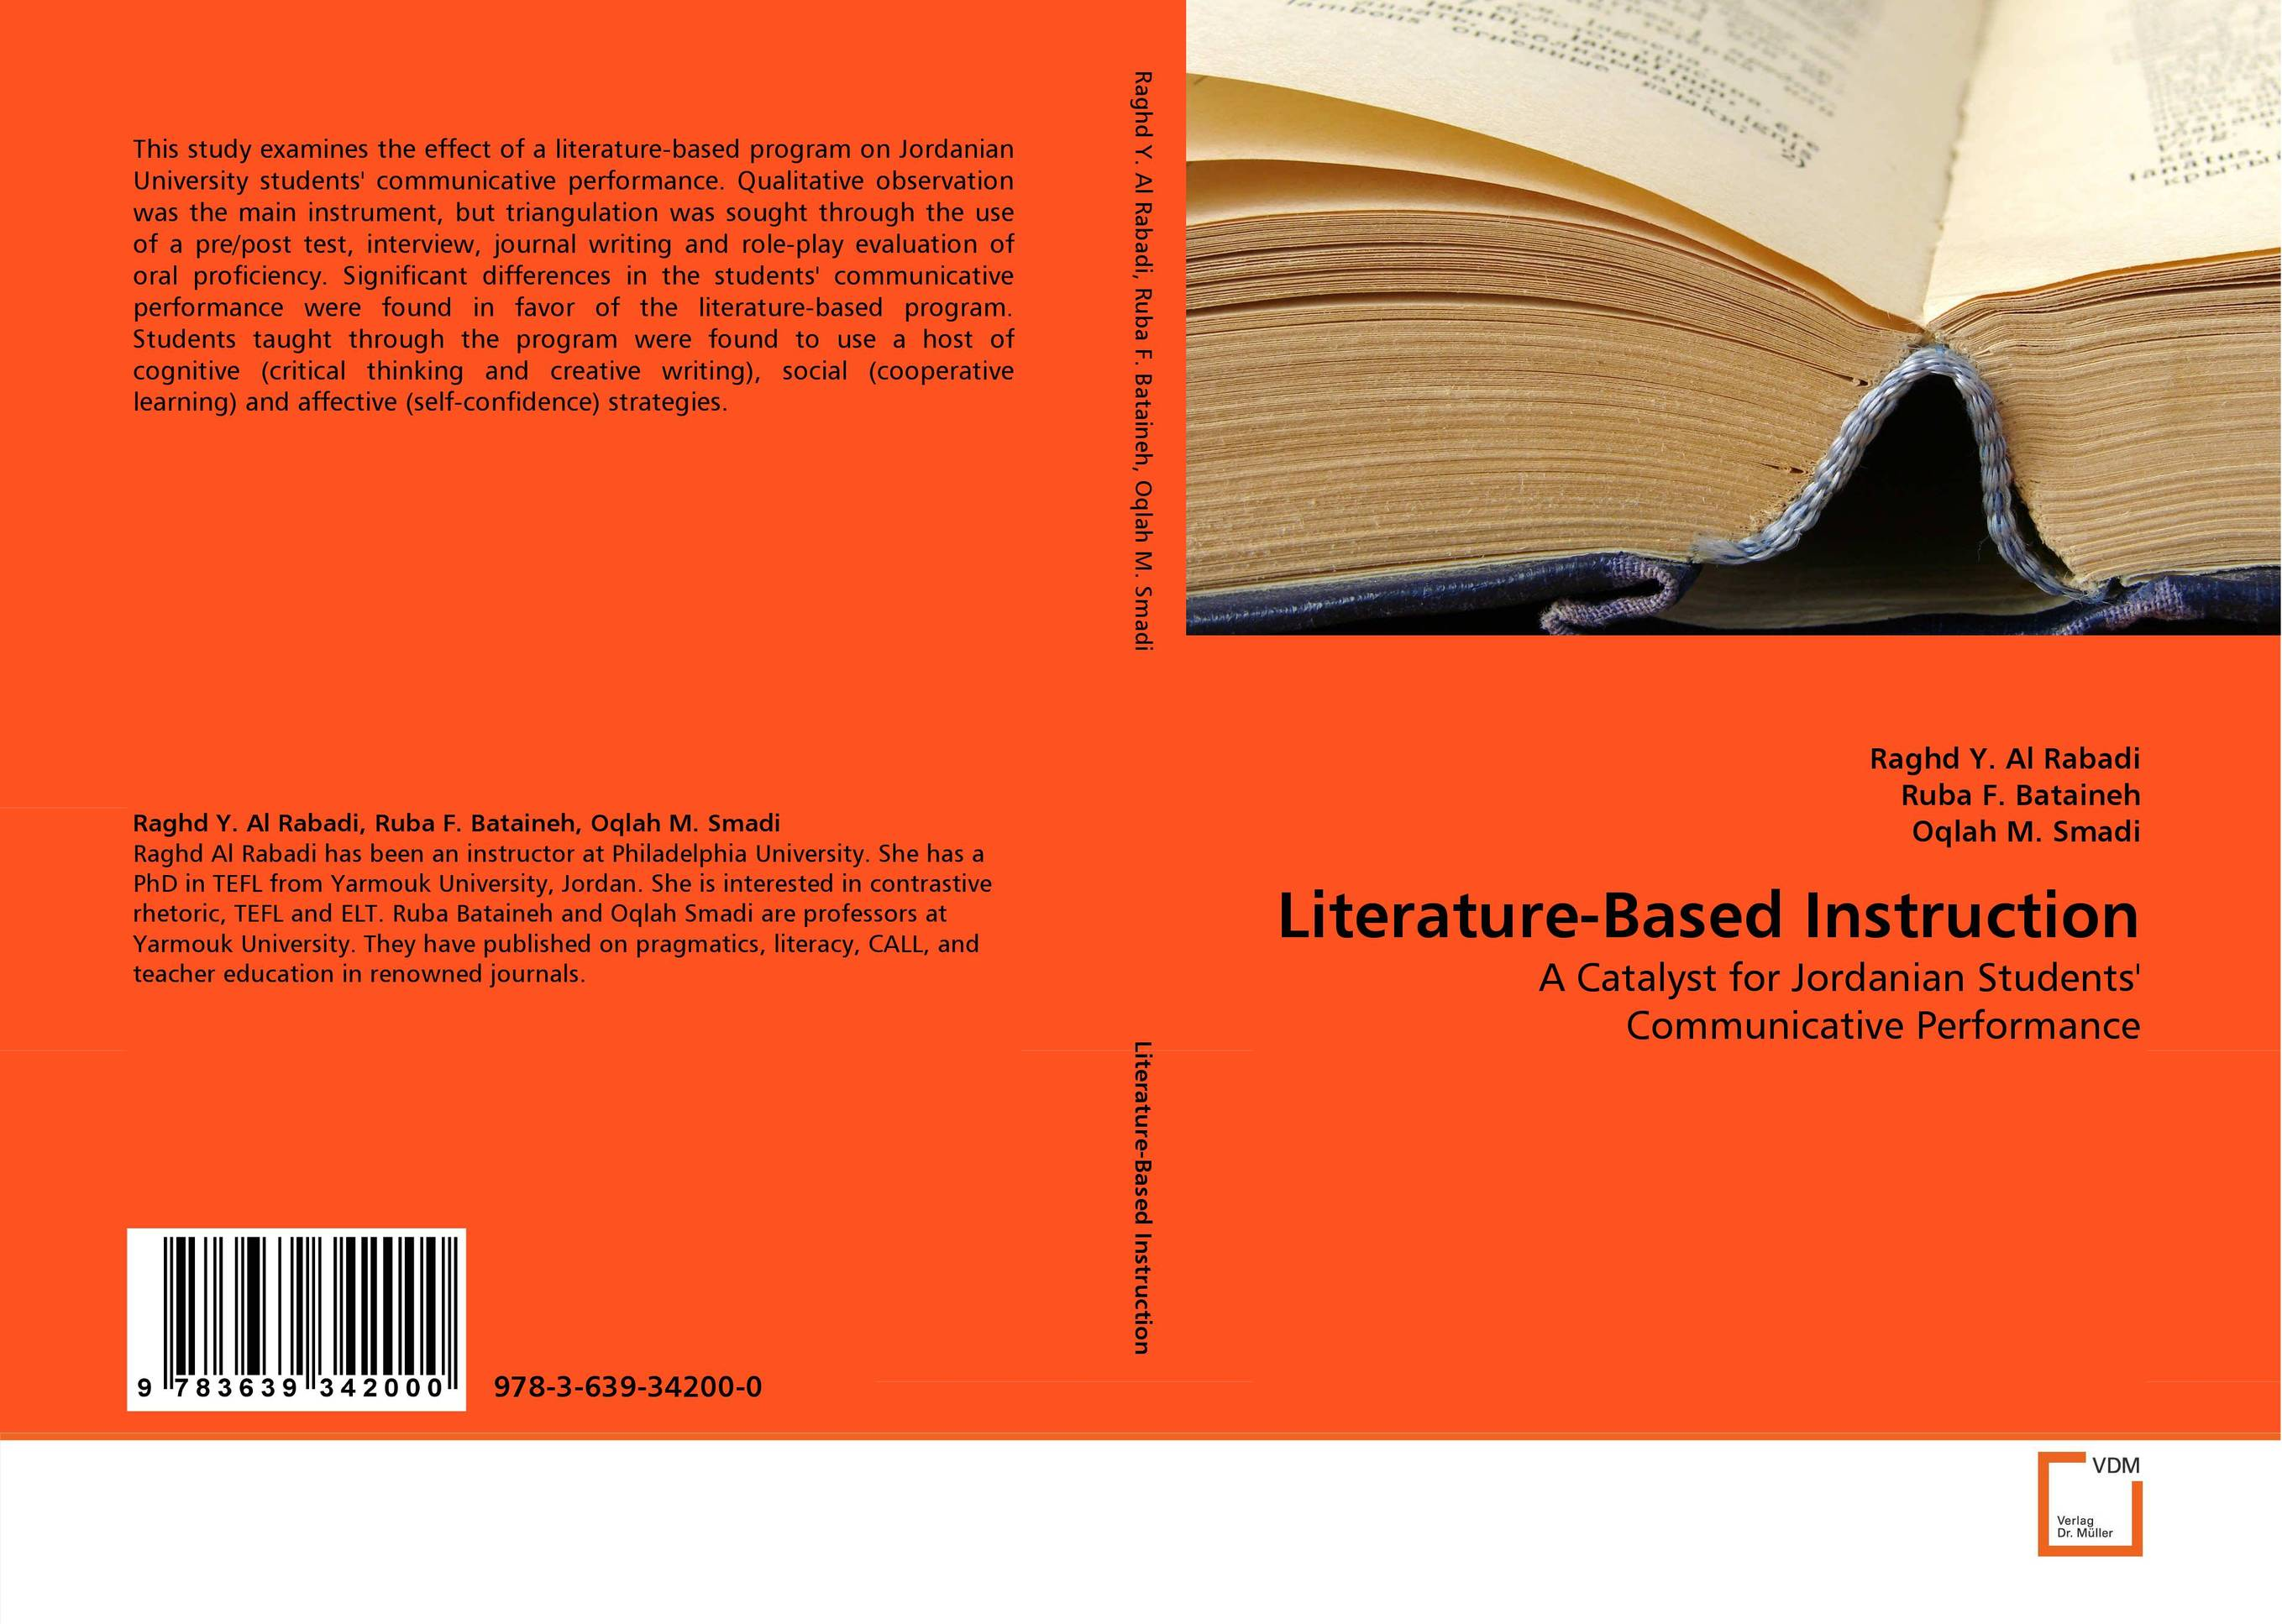 Literature-Based Instruction